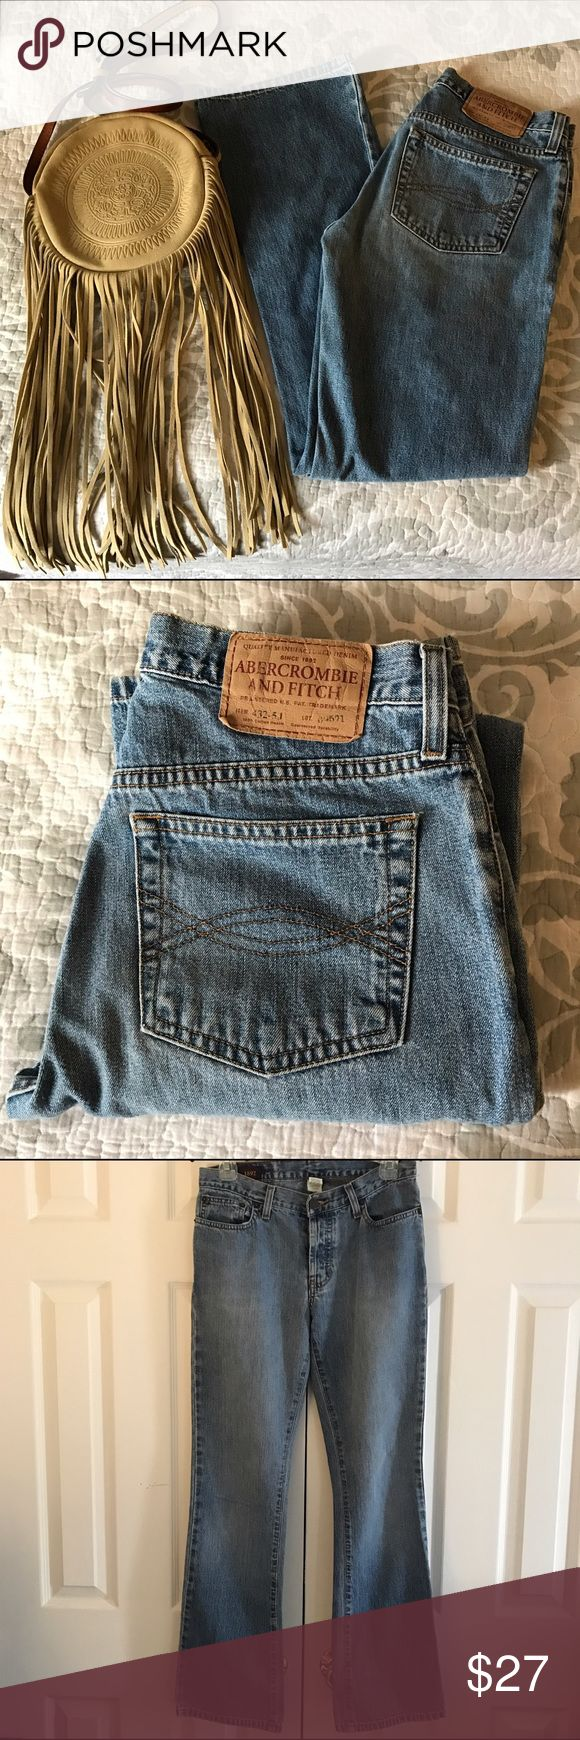 """Abercrombie& Fitch Distressed Jeans size-0R Abercrombie & Fitch Distressed Bootcut button fly  Jeans in size-0R with Inseam approx.- 31"""" worn 1-2x's max then put away & from smoke free home, comes as shown & cross body bag is also for sale upon request. Abercrombie & Fitch Jeans Boot Cut"""